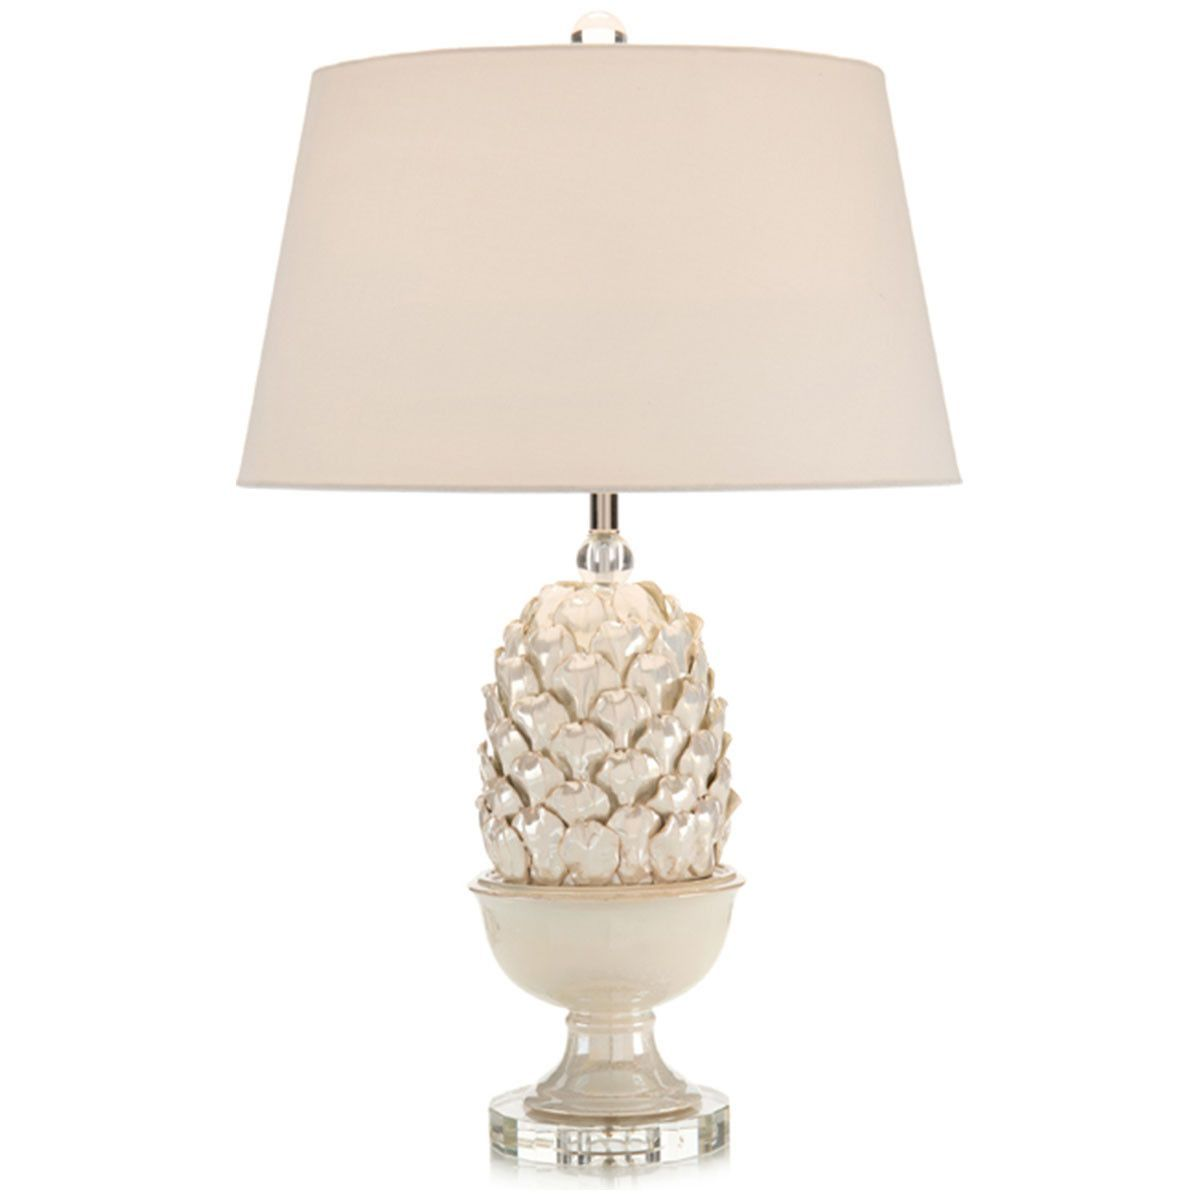 John richard pearlized artichoke table lamp cozy living room john richard pearlized artichoke table lamp geotapseo Image collections